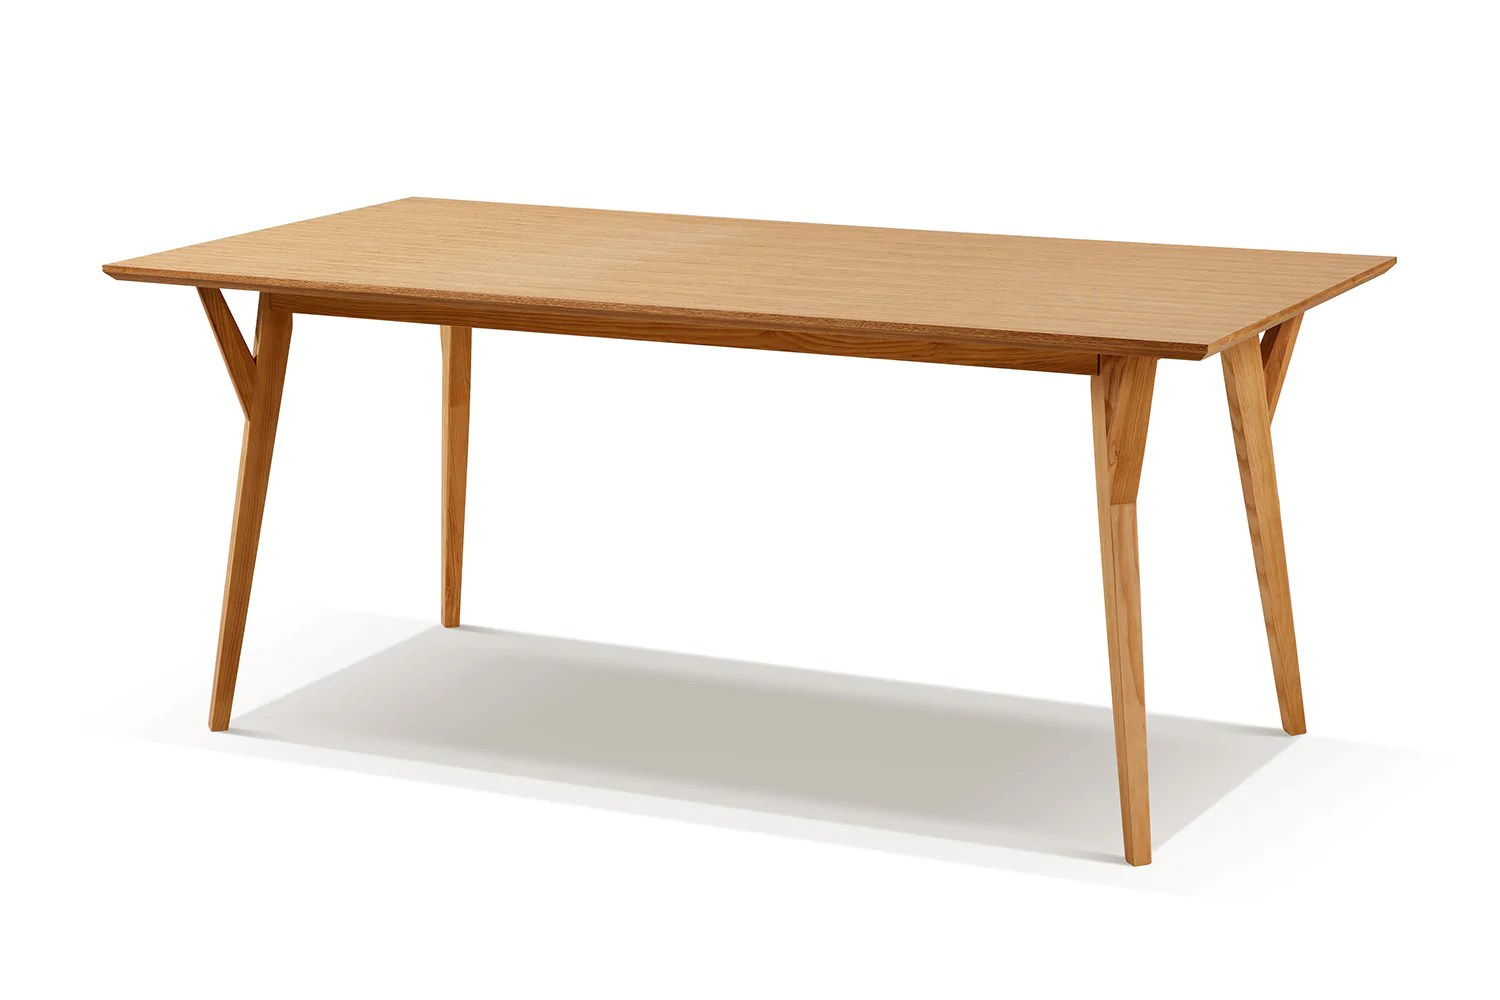 Table Manger Scandinave Table De Salle à Manger Scandinave En Bois Linth